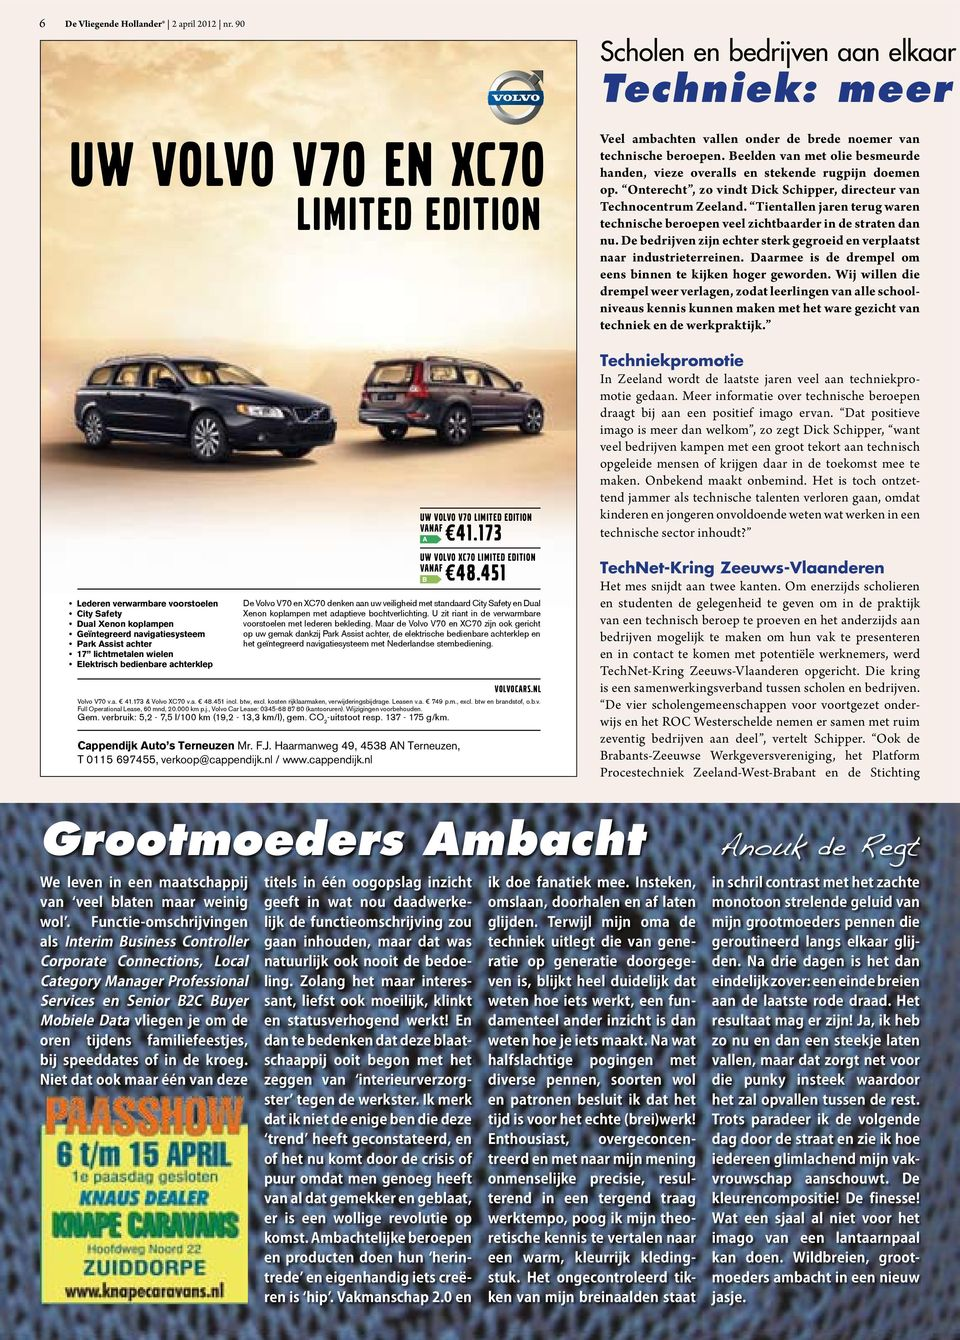 Limited Edition uw Volvo V70 limited edition vanaf 41.173 uw Volvo XC70 limited edition vanaf 48.